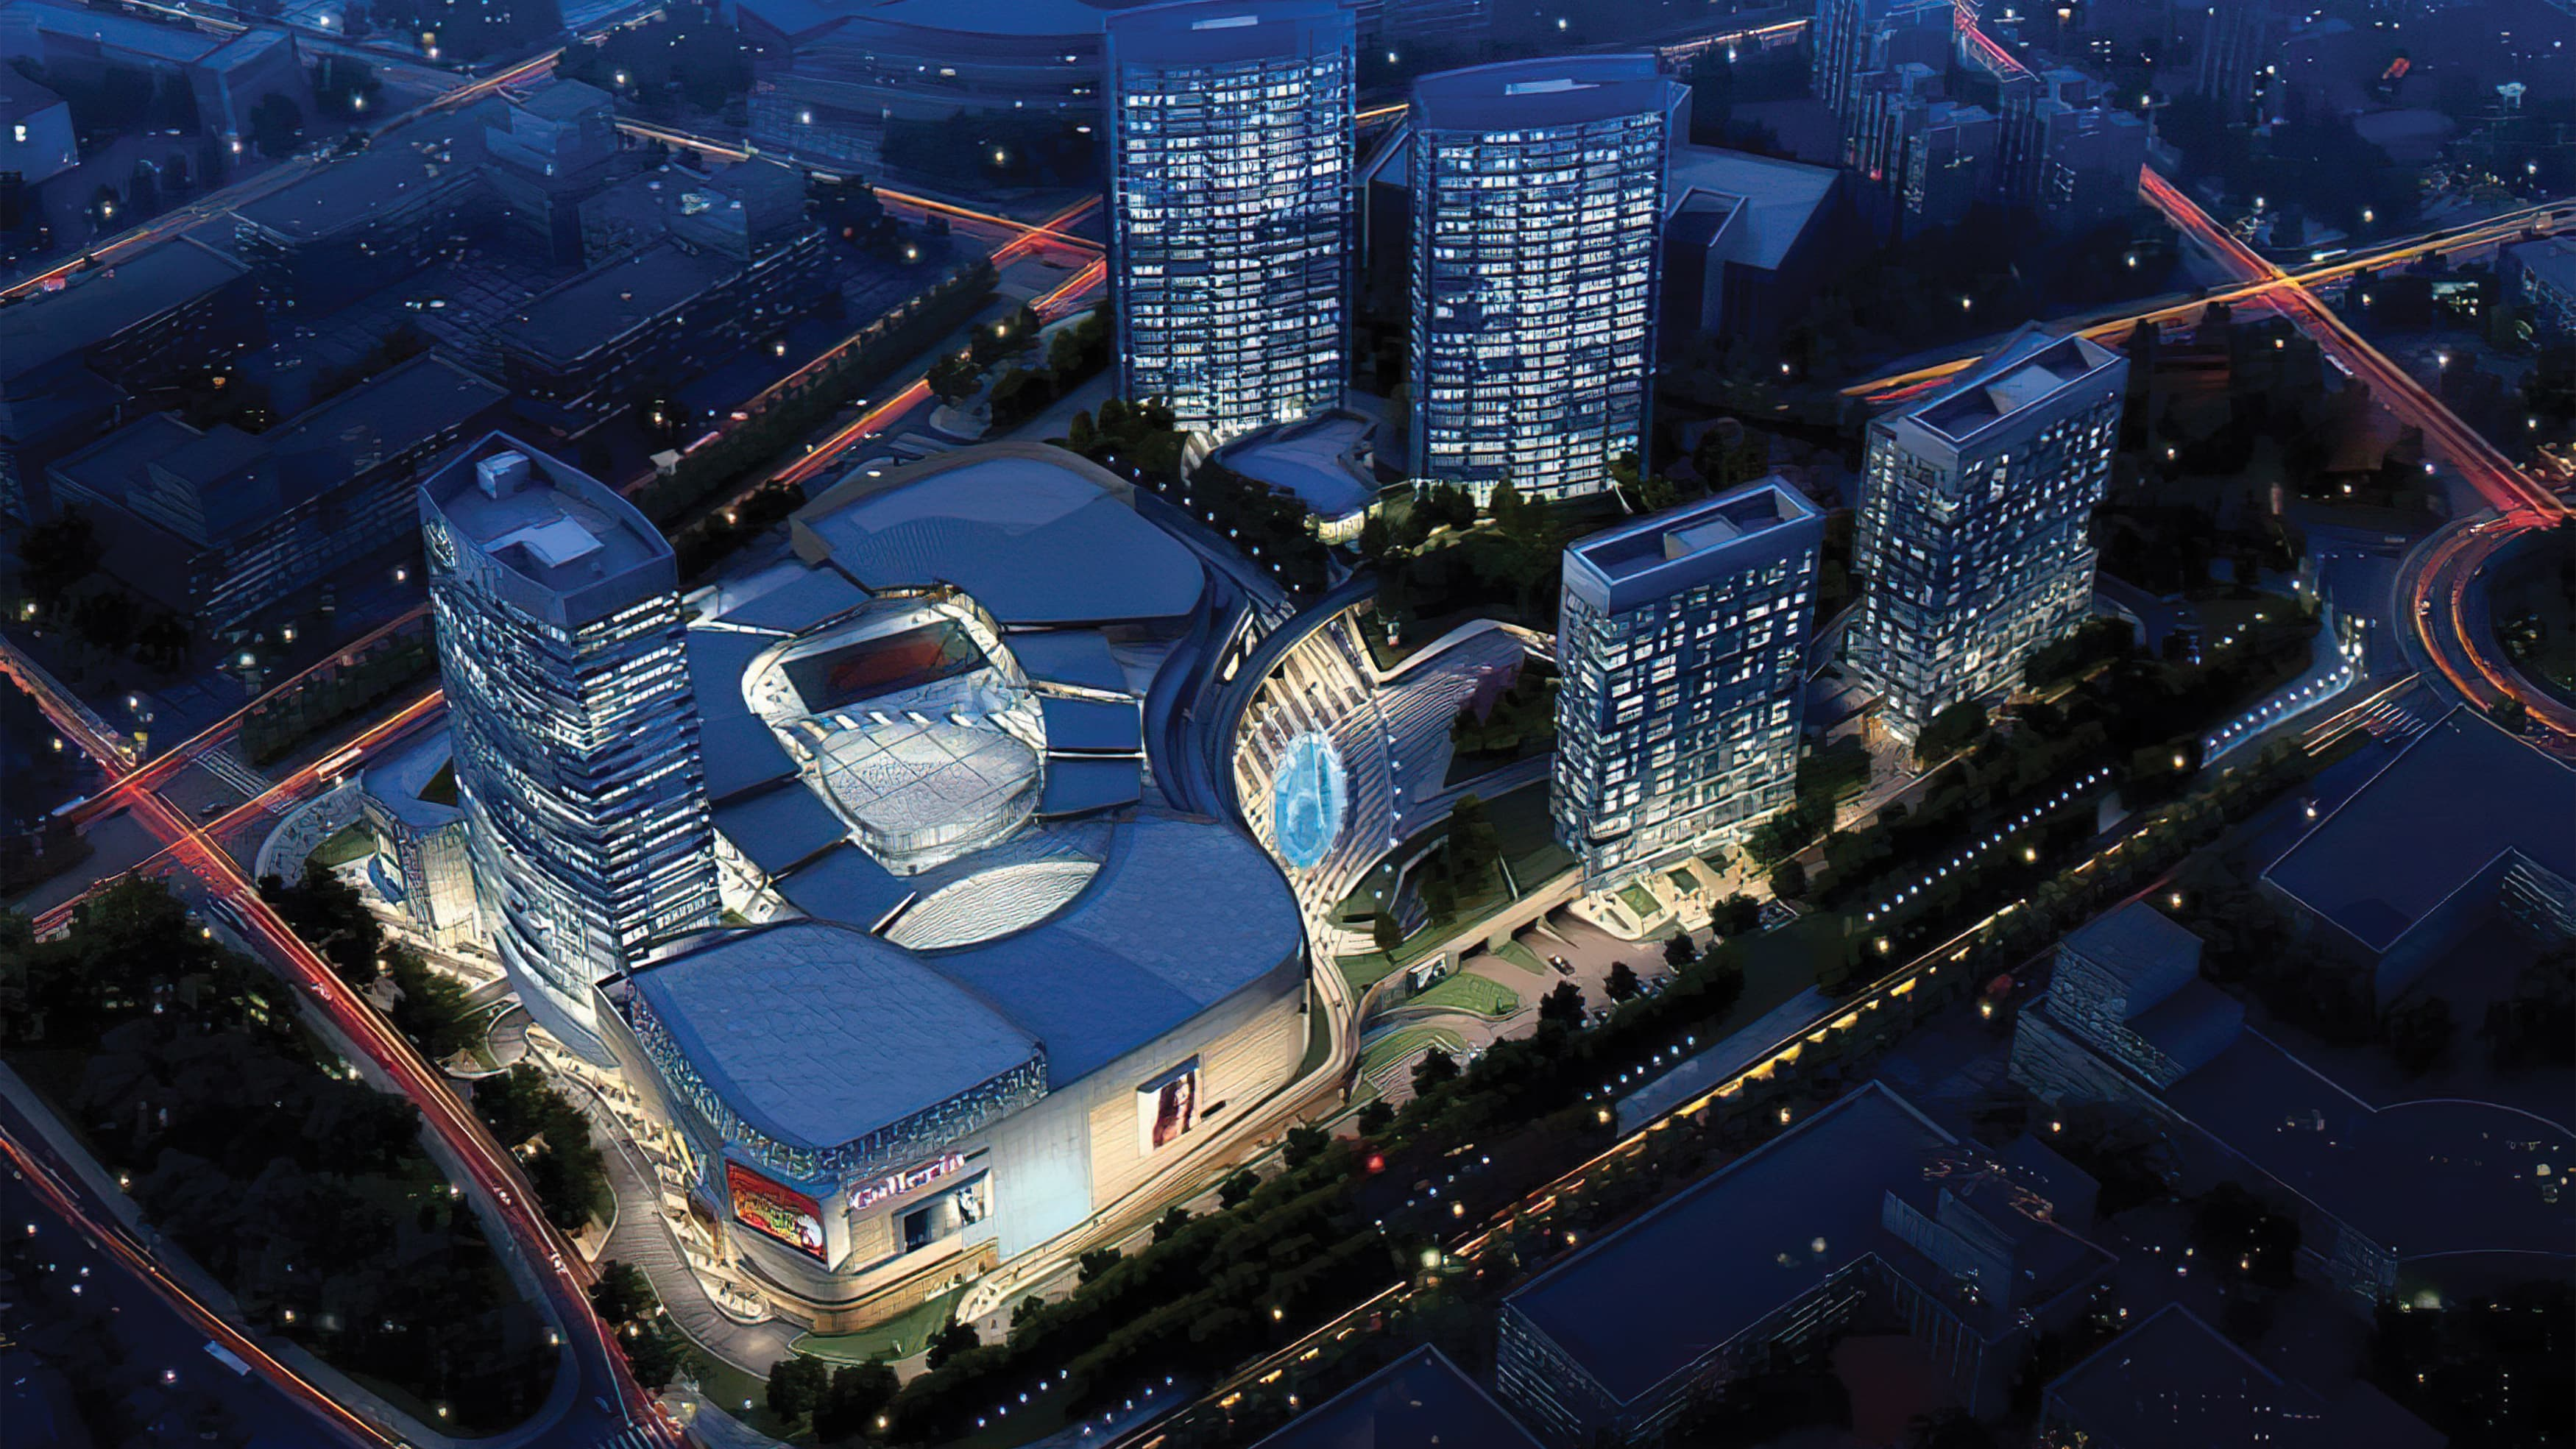 A night-time rendering of the Kardan Land Europark project